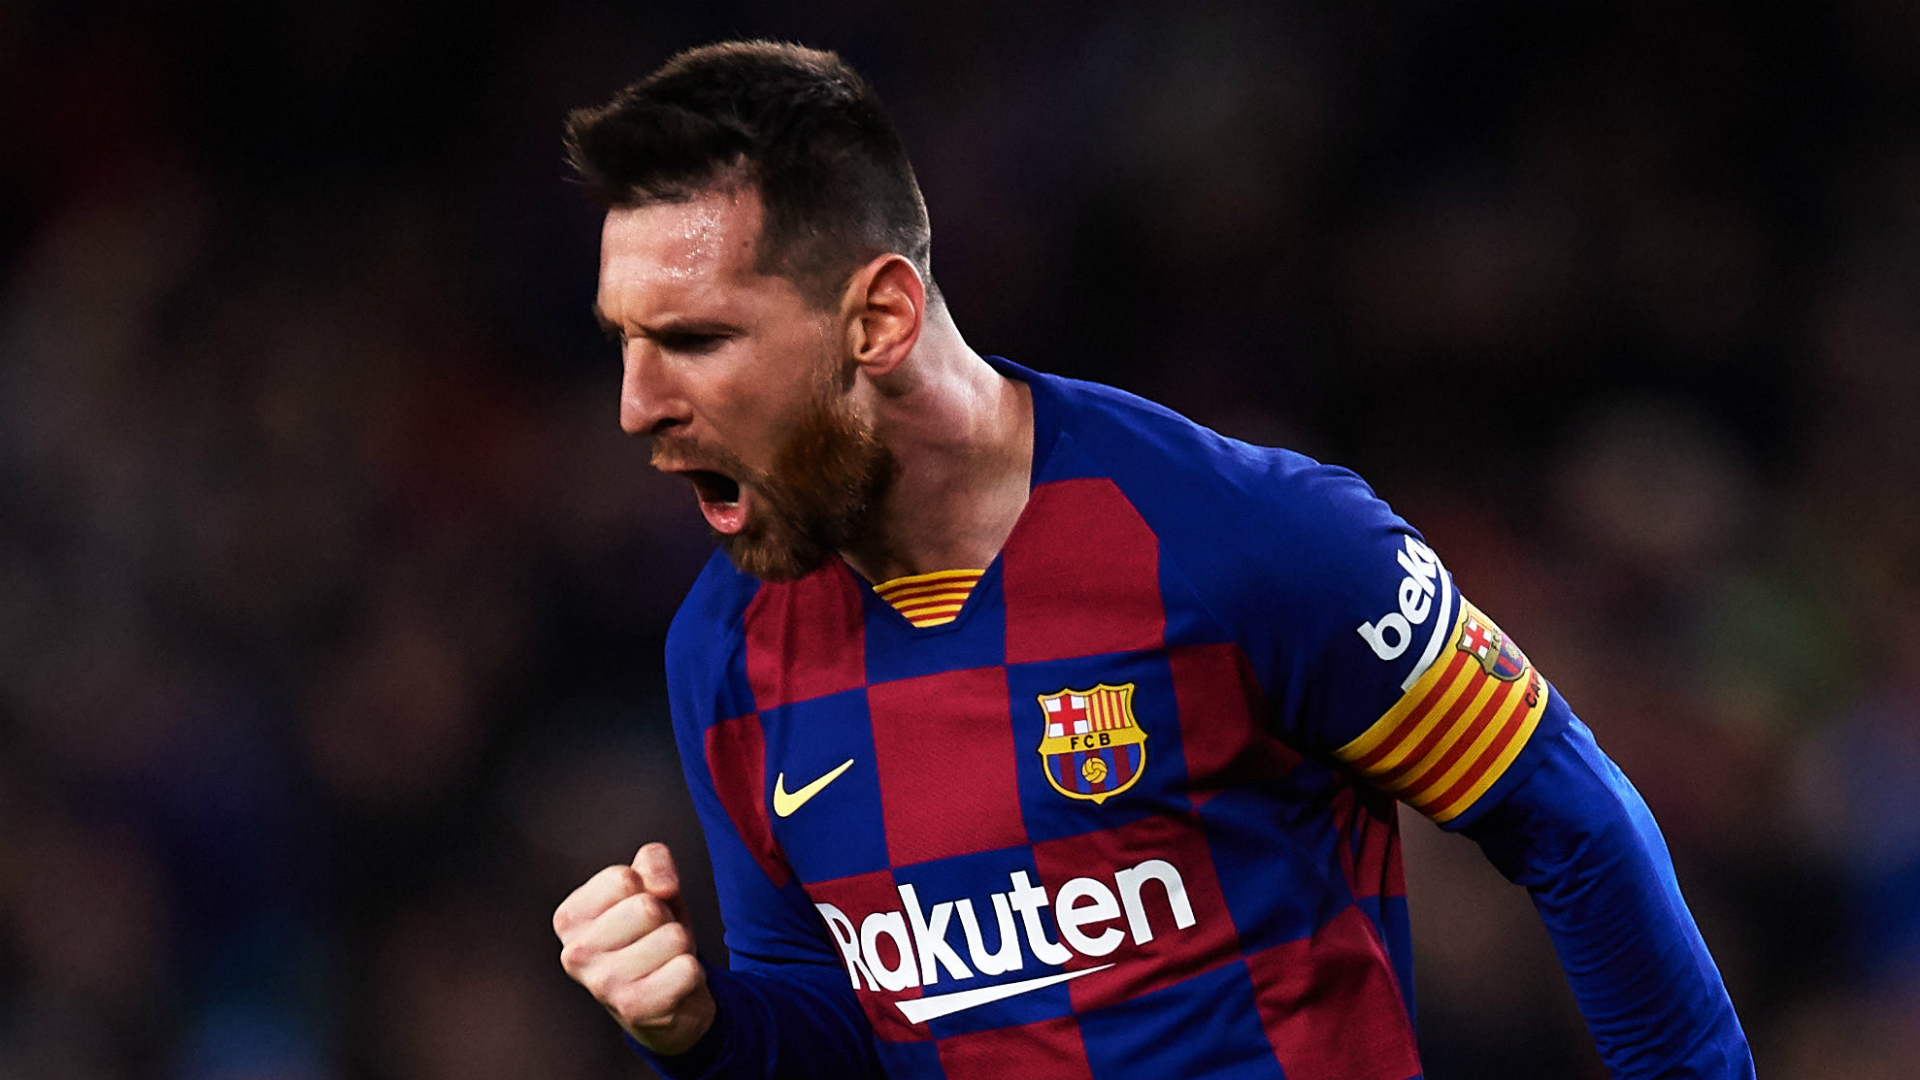 Messi is the best, just give him the Ballon d'Or – Valverde